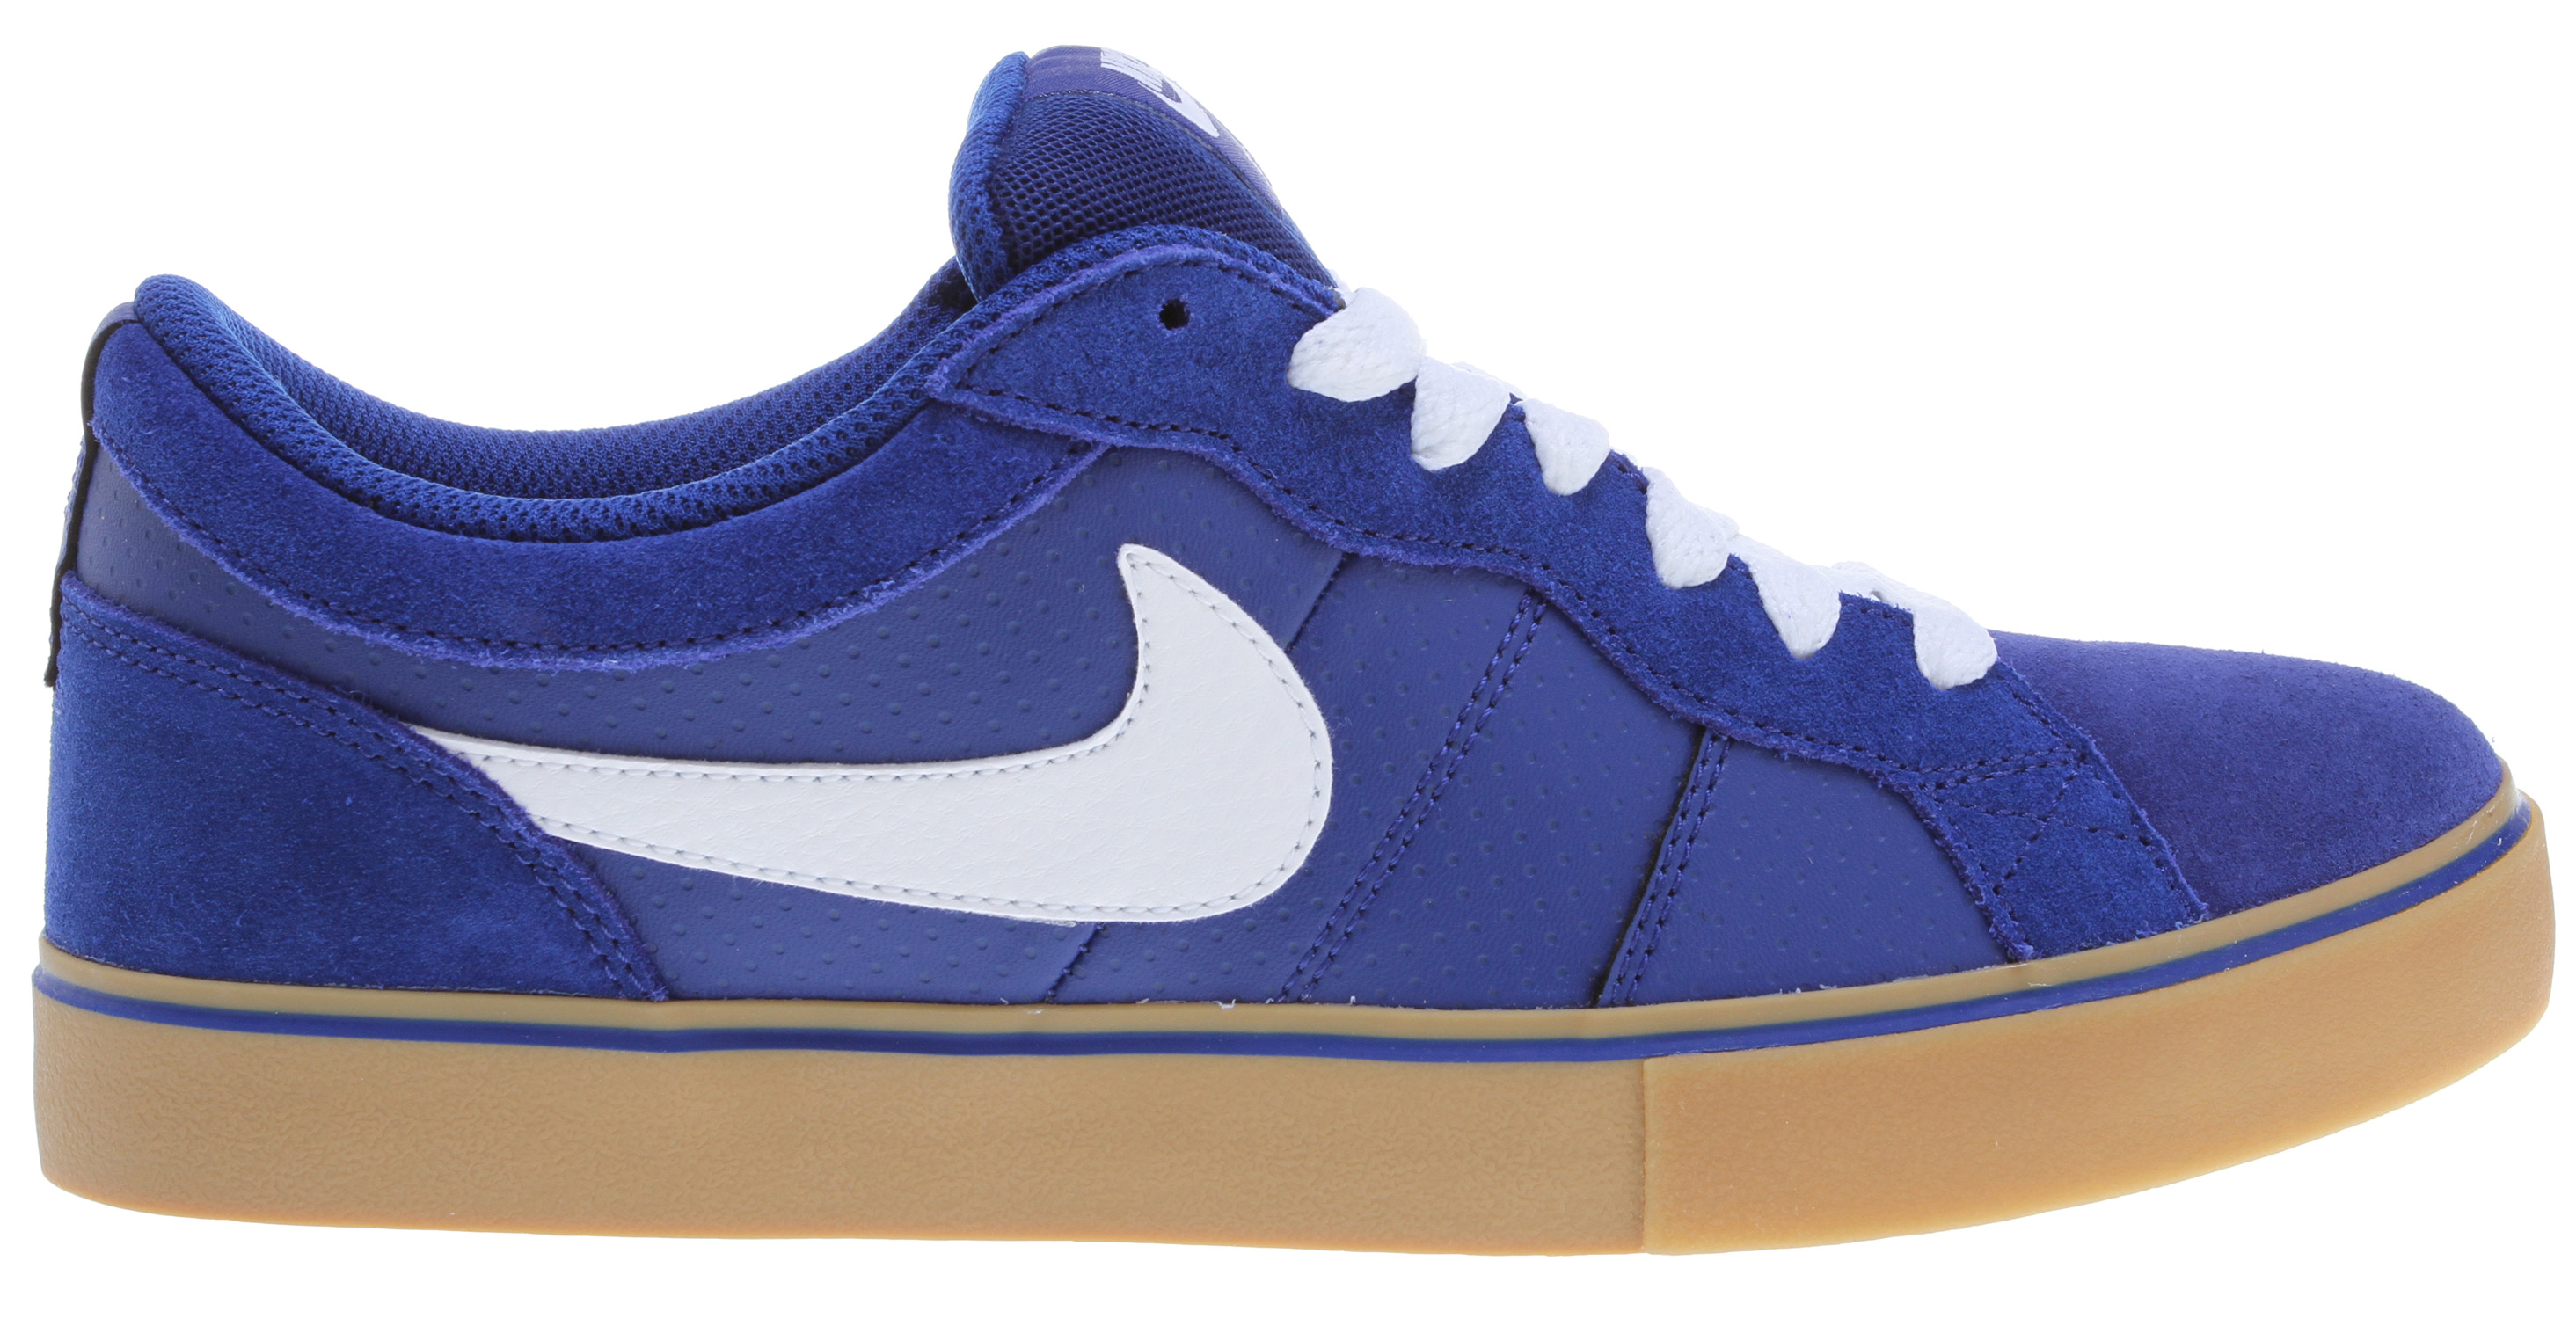 Skateboard Key Features of the Nike Isolate Lr Shoes: MIDSOLE: Phylon midsole for comfort OUTSOLE: Rubber outsole for durability and support Classic skate look with great material and color applications UPPER: Suede, leather and Nubuck materials. - $45.95